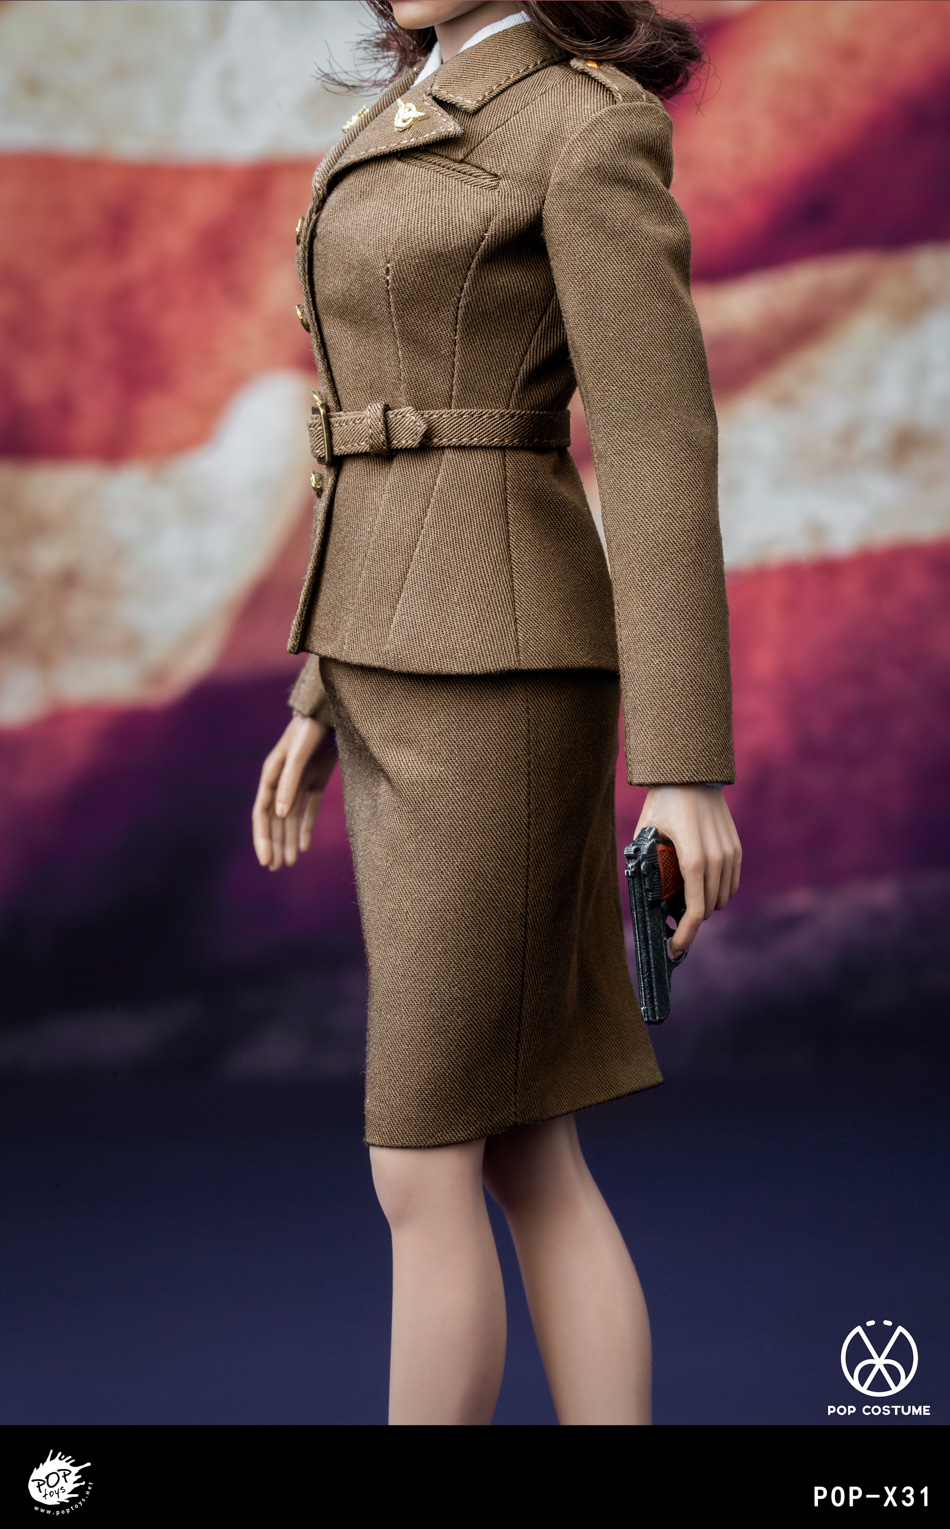 poptoys - NEW PRODUCT: POPTOYS: 1/6 Series X31 - World War II US Female Agent Uniform Set 17551310